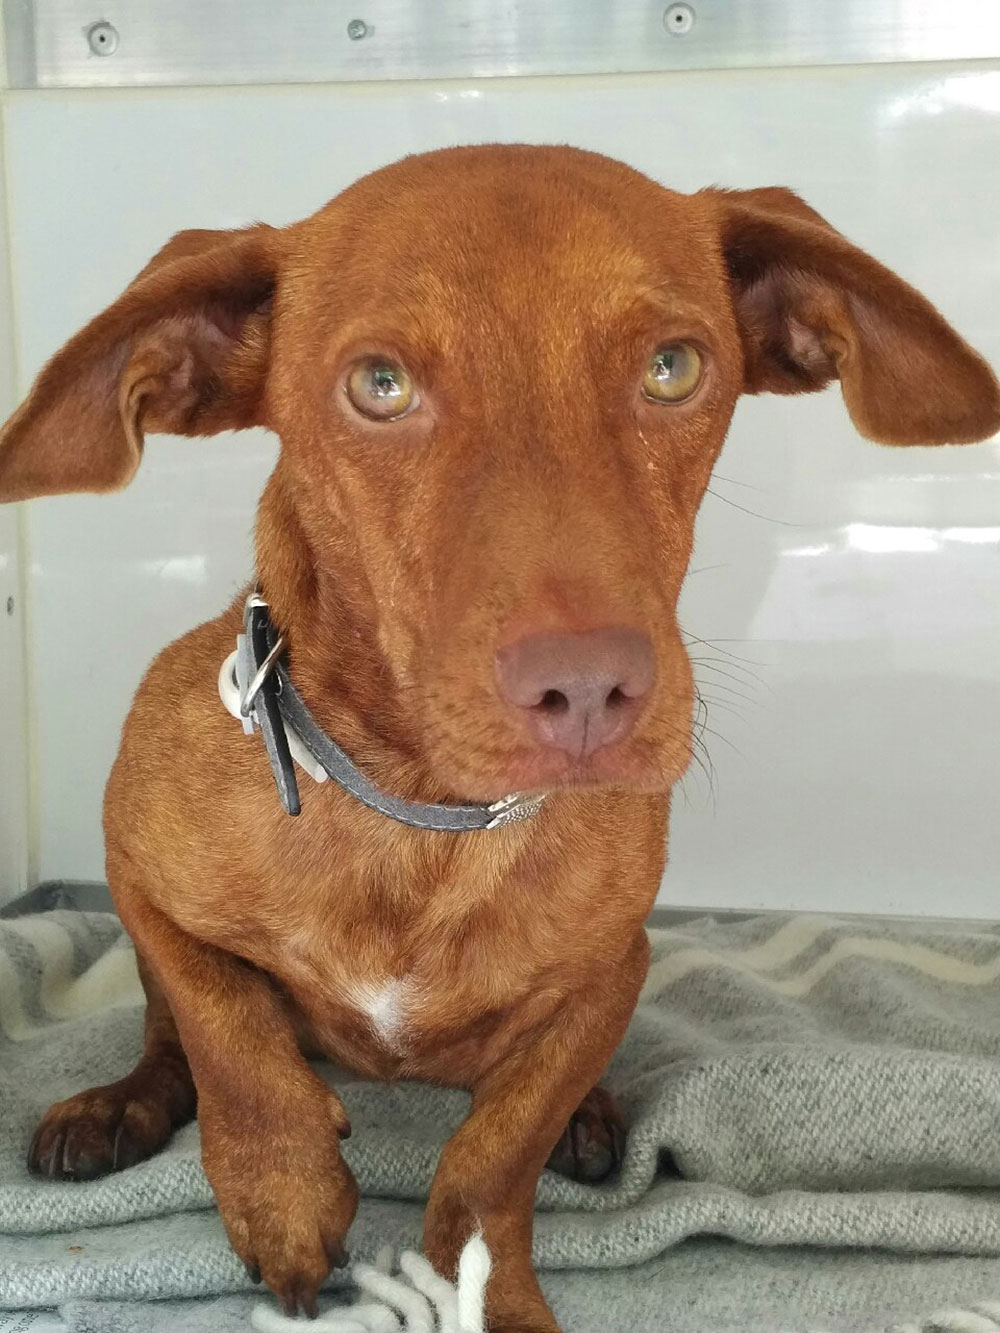 Dobbie is named after the house elf in Harry Potter — the resemblance is uncanny!